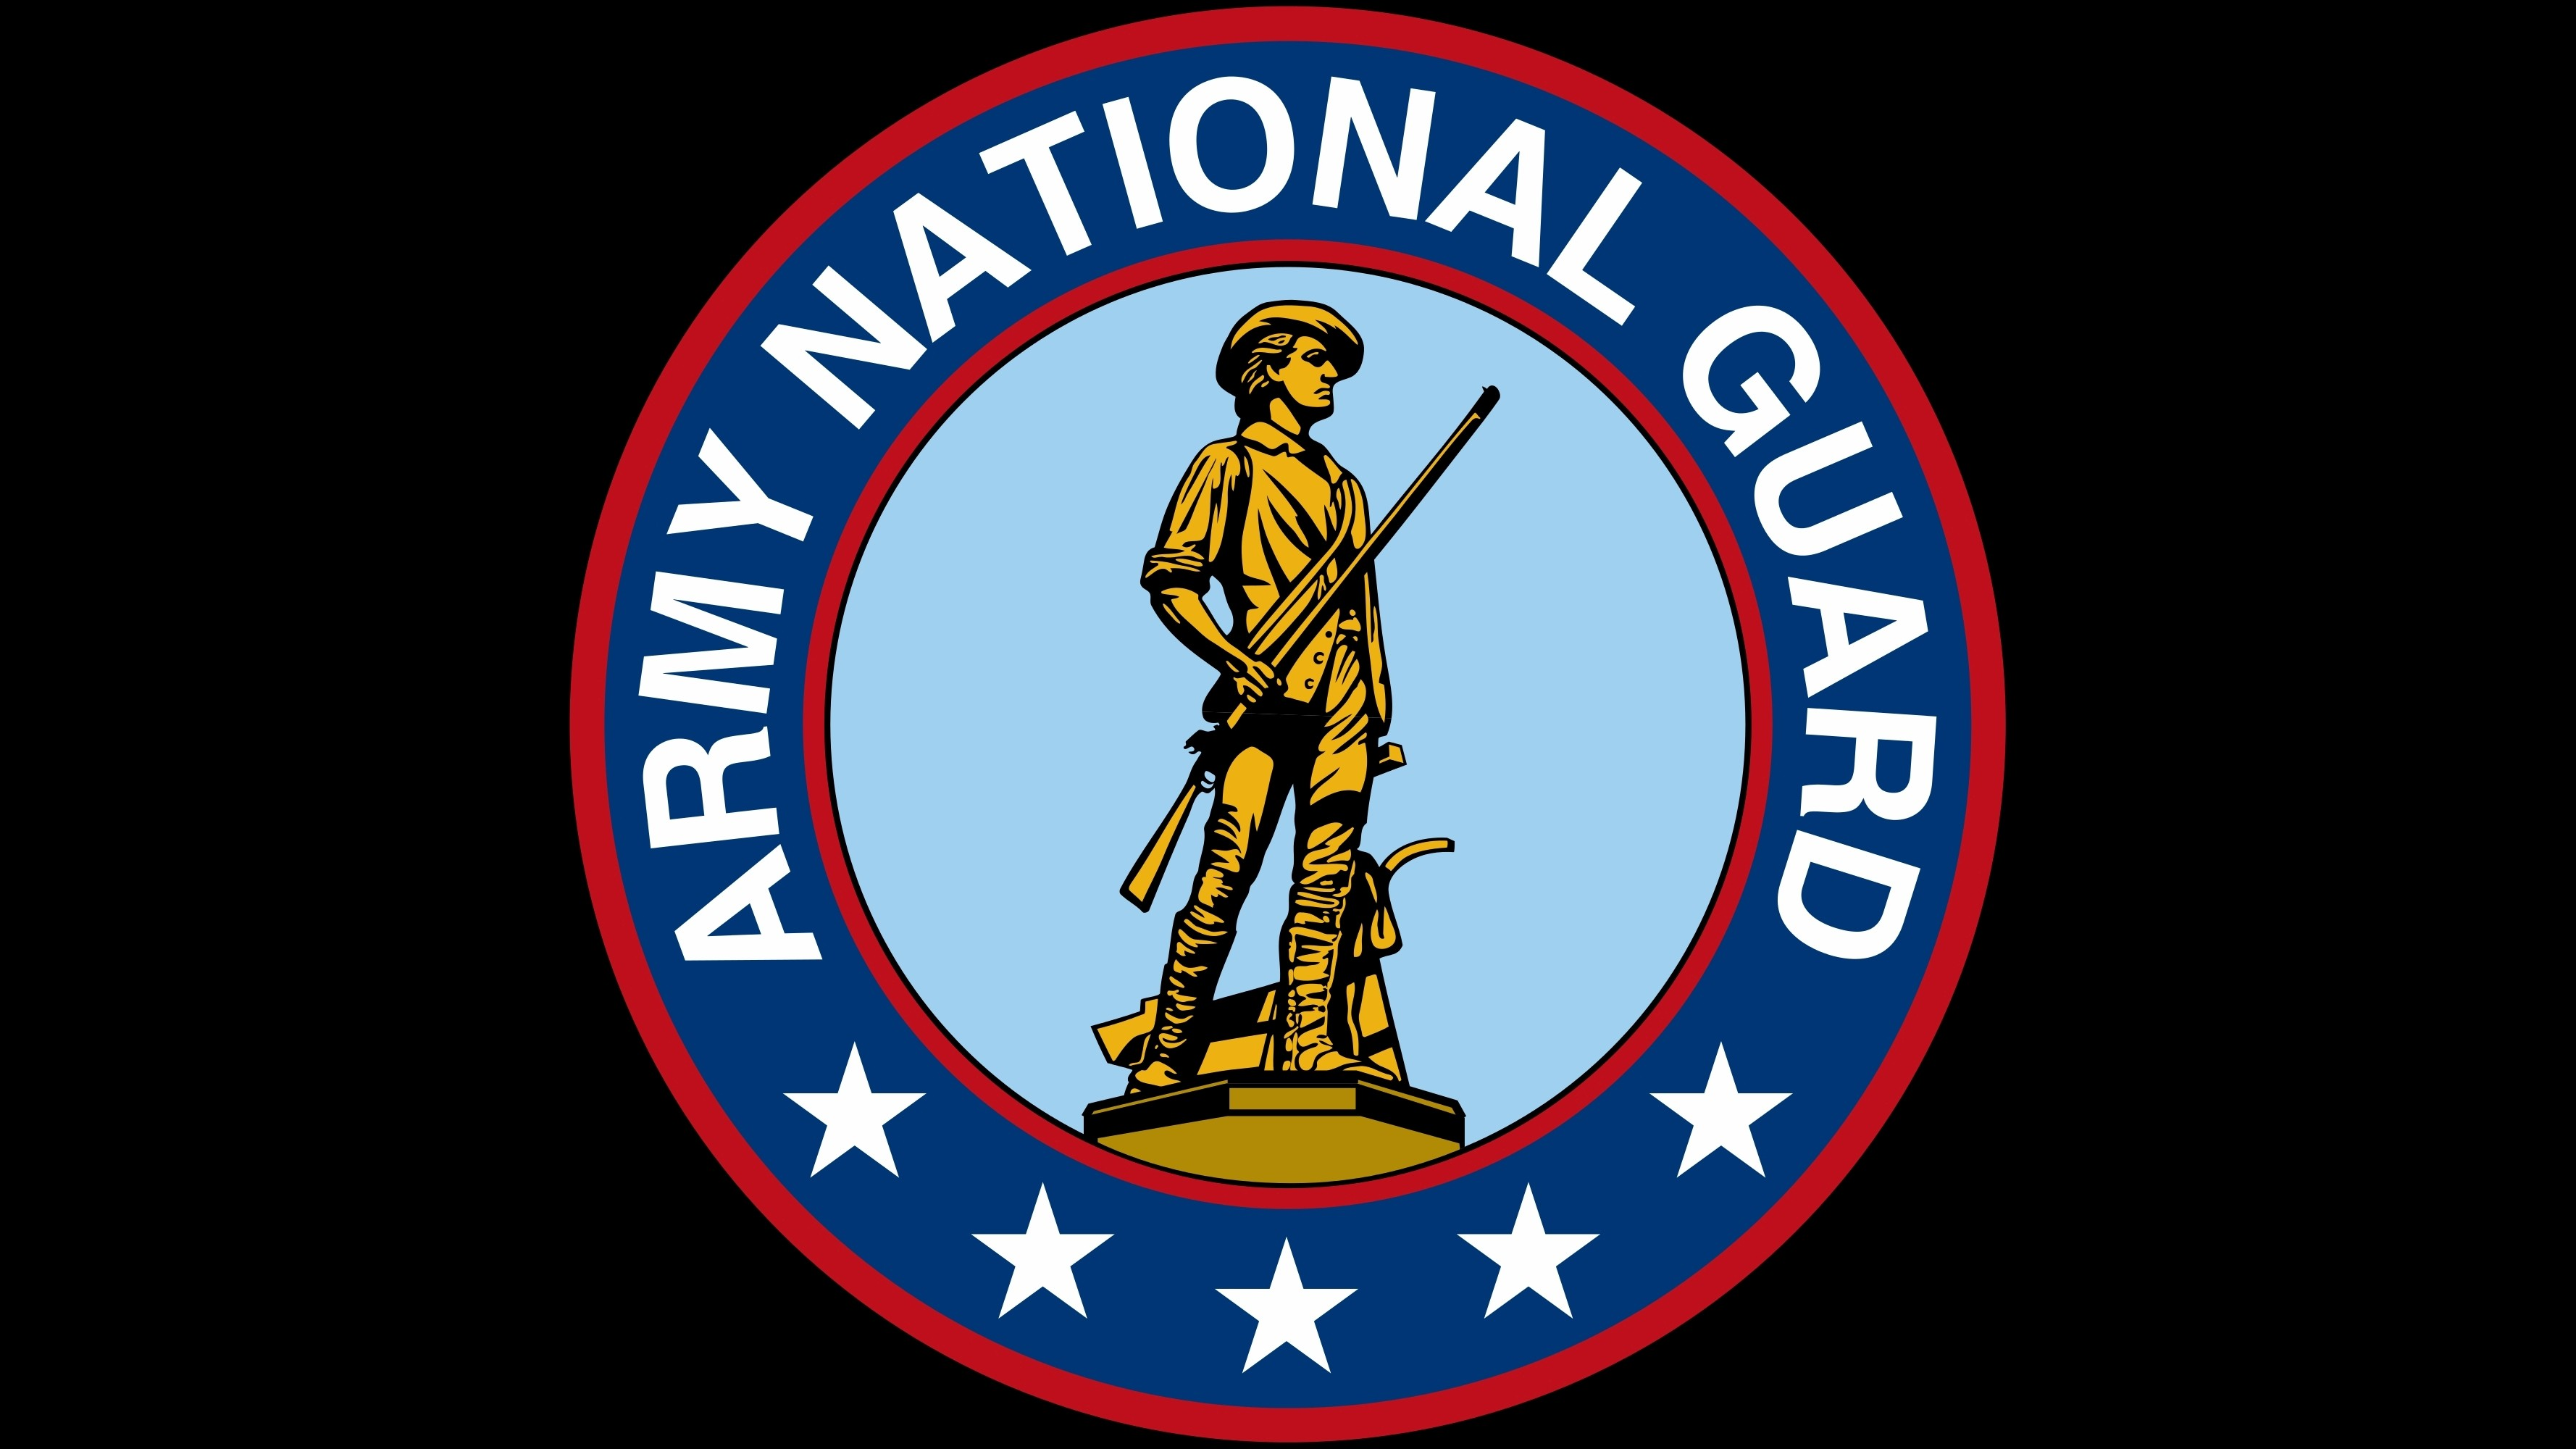 Wallpaper Android N Army: Army National Guard Wallpaper (64+ Images